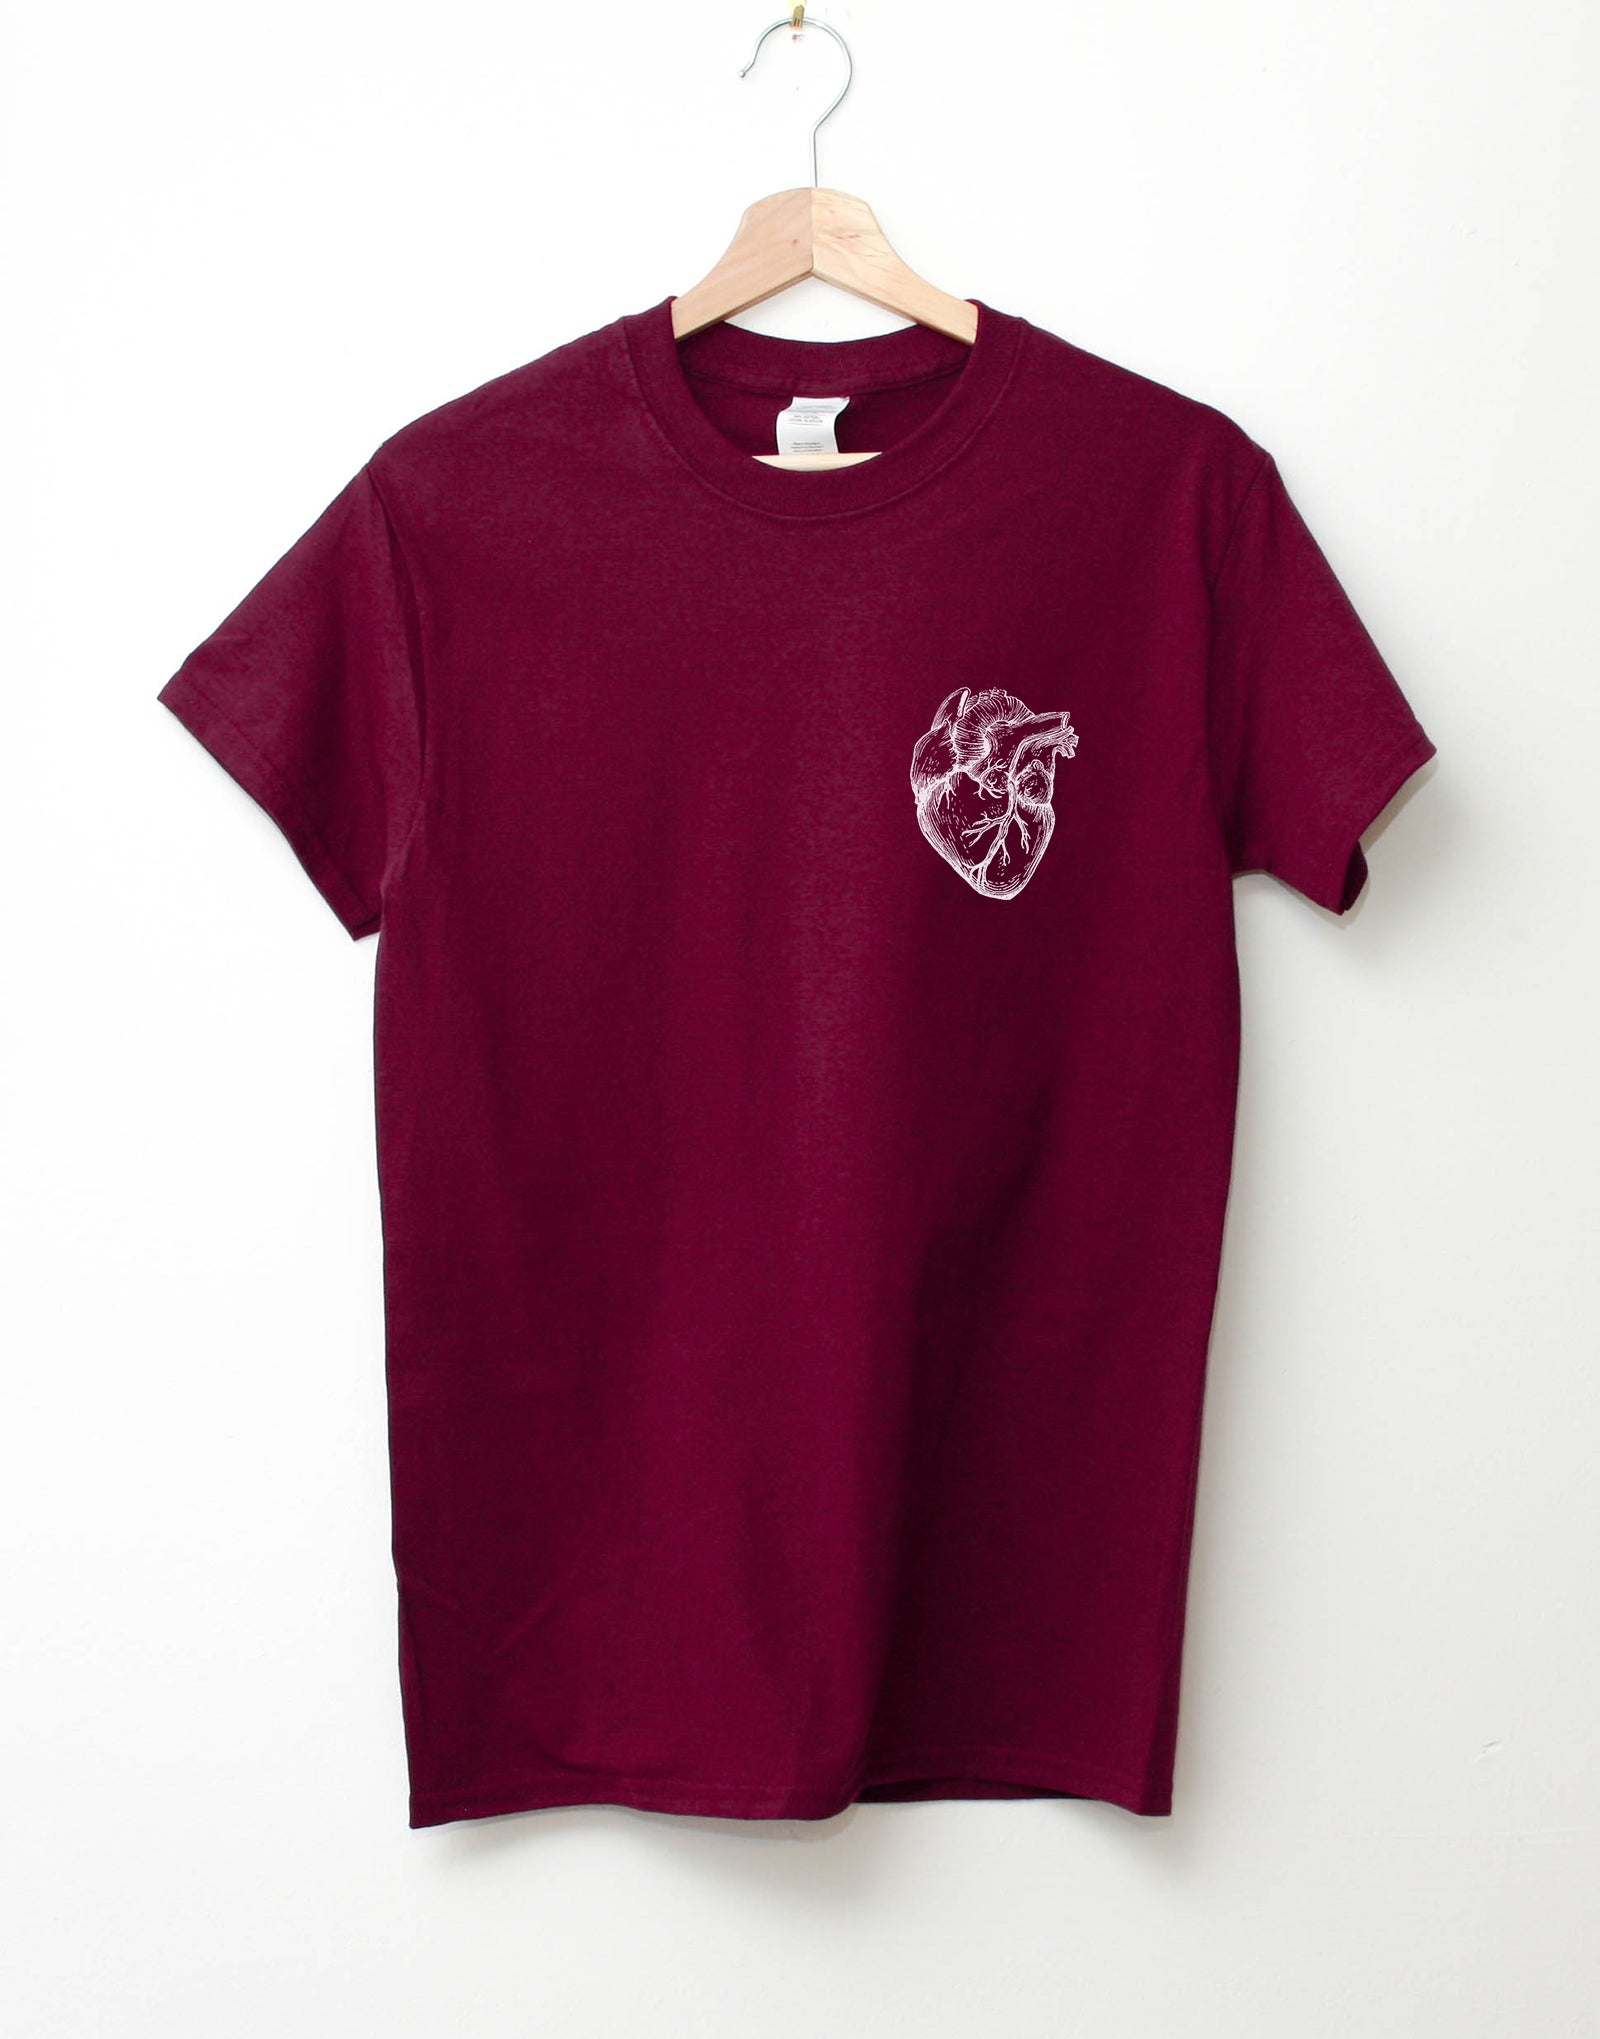 Heart organ pocket print t-shirt (maroon)